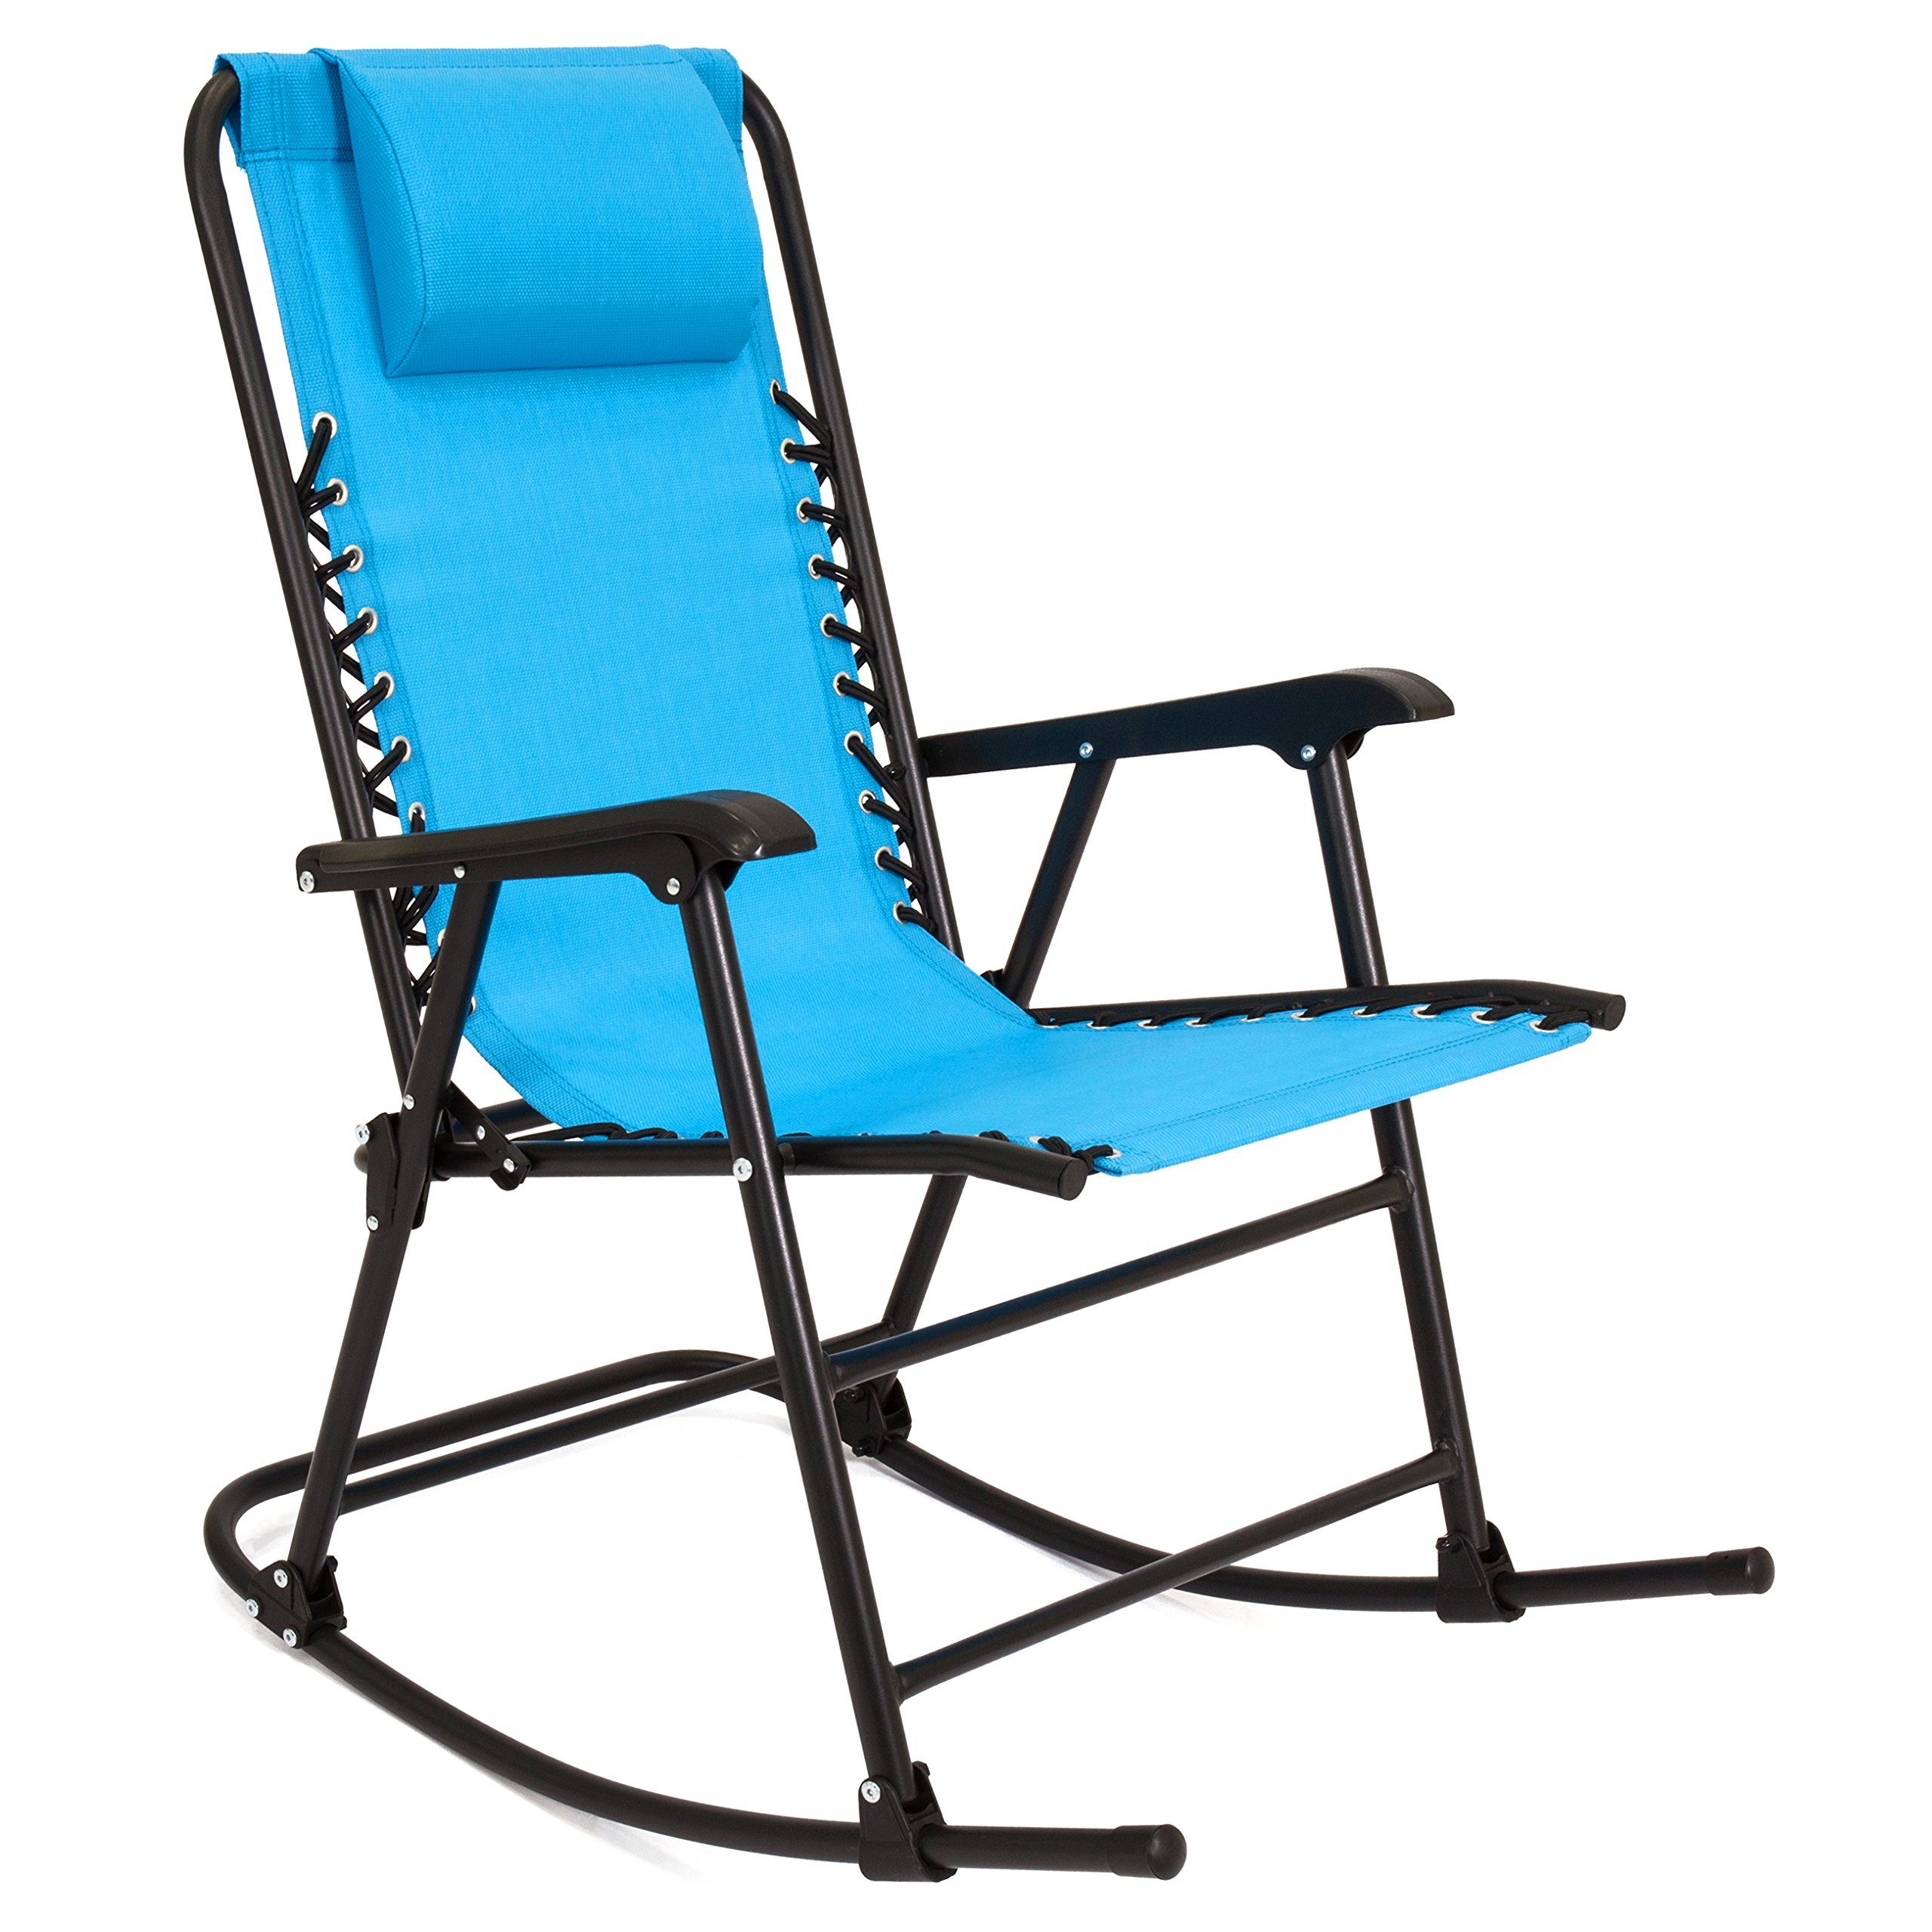 Best Choice Products Foldable Zero Gravity Rocking Patio Recliner Chair - Light Blue by Best Choice Products